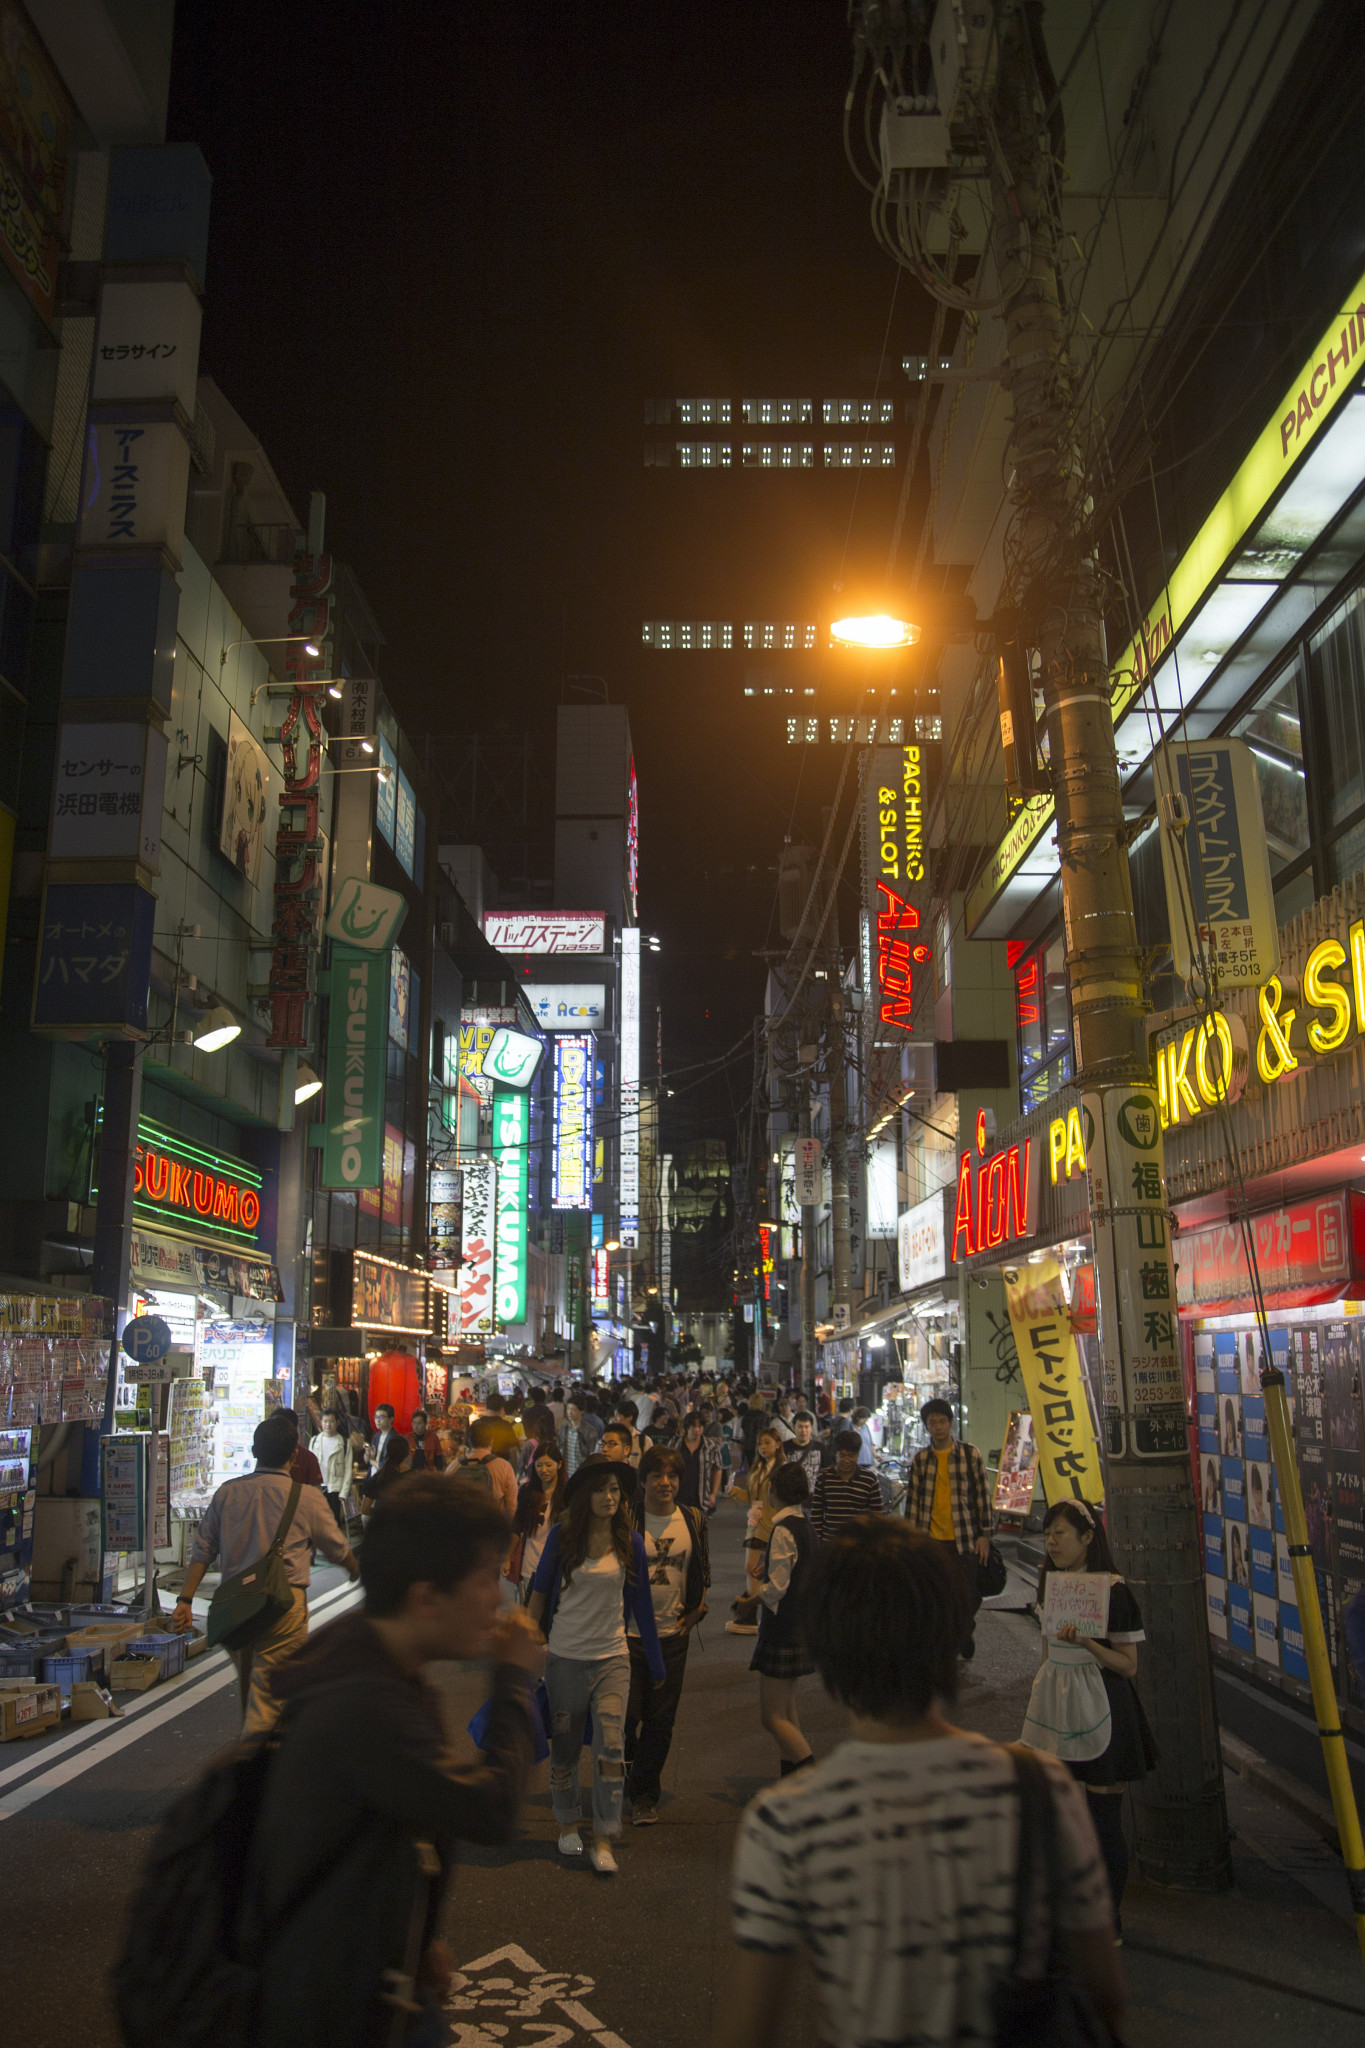 Streets of Tokyo by night